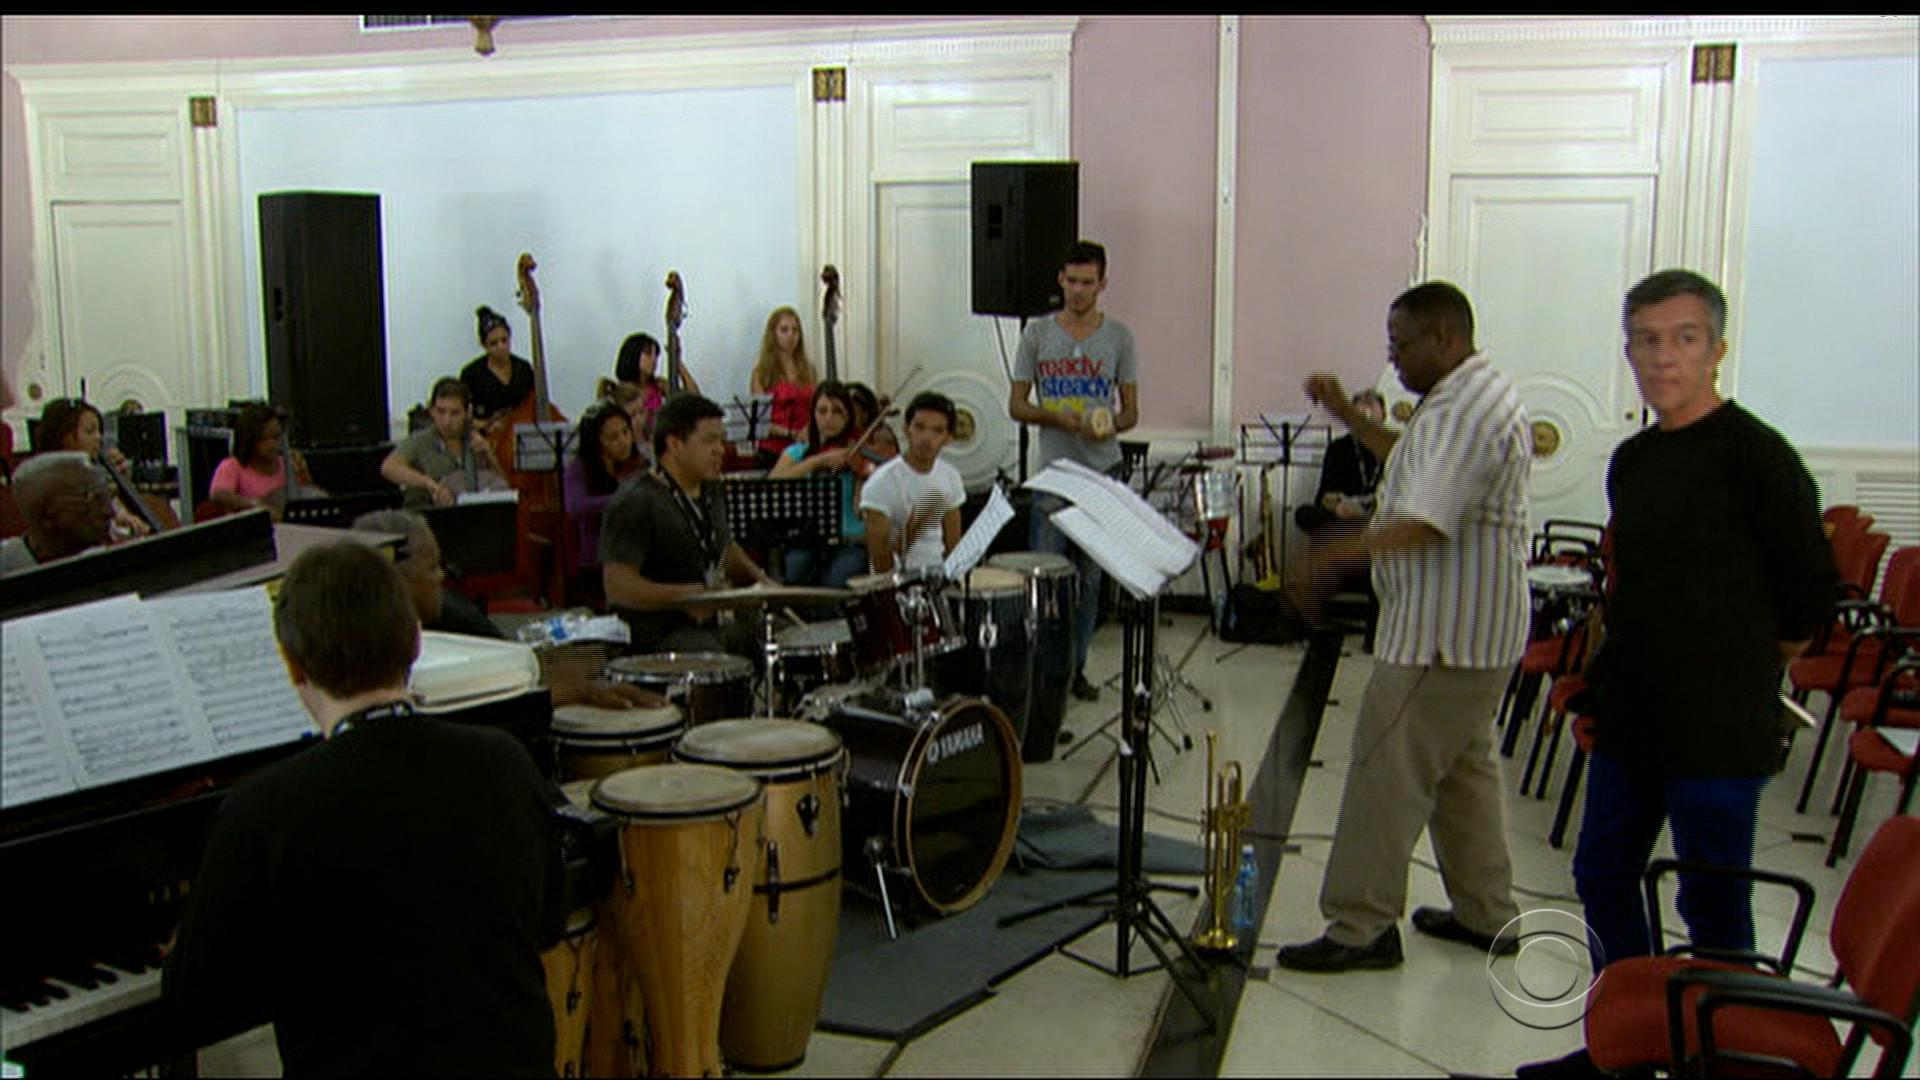 Young Cubans bright-eyed about their future